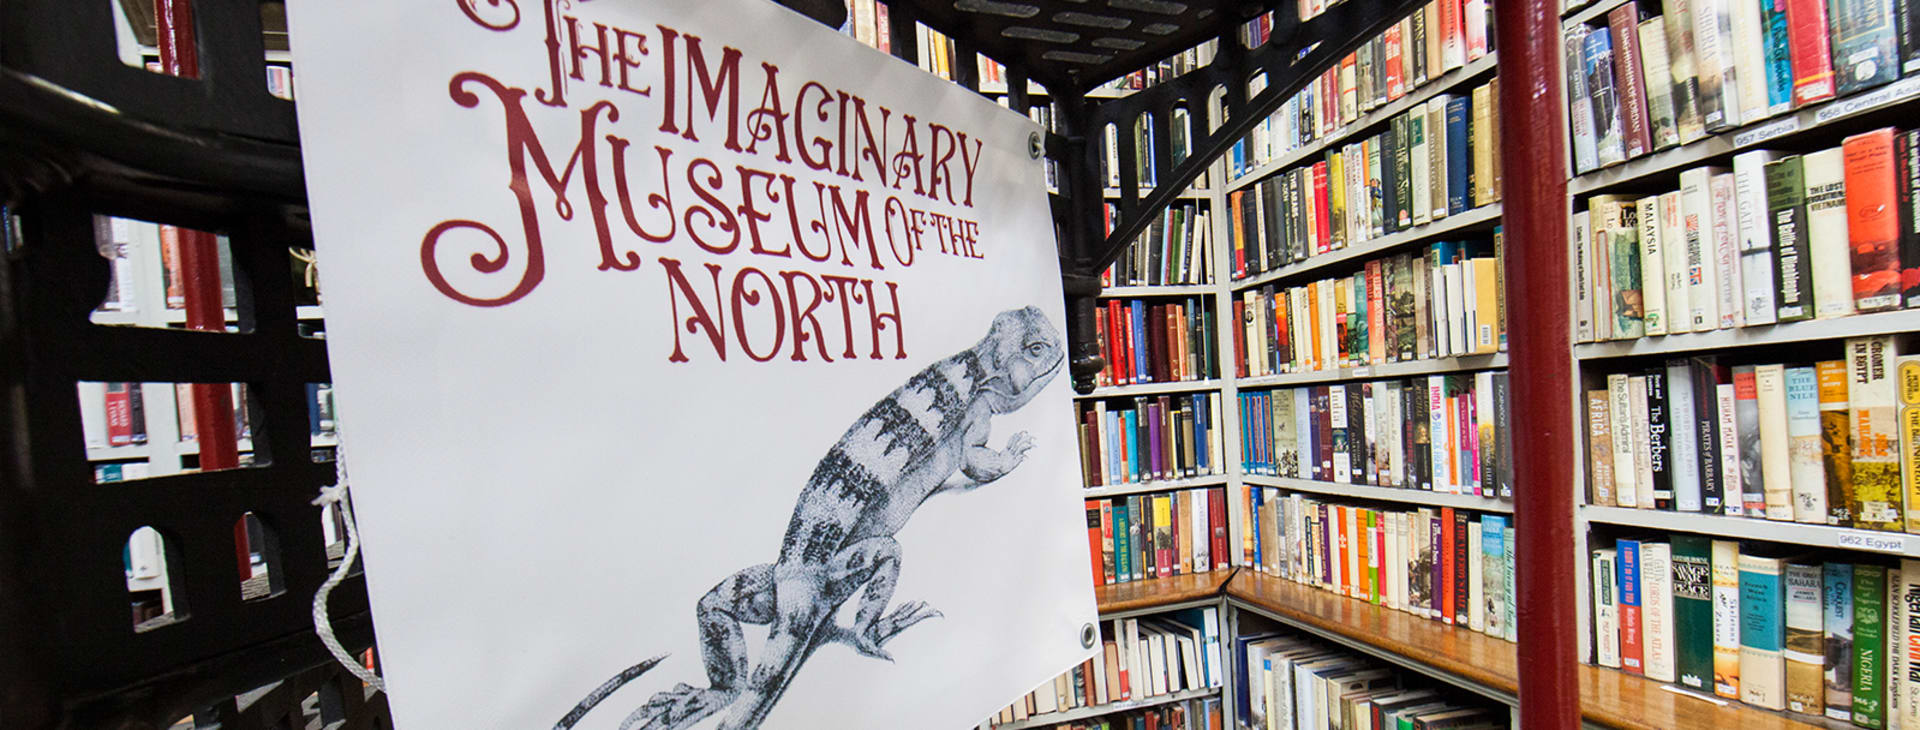 The Imaginary Museum of the North